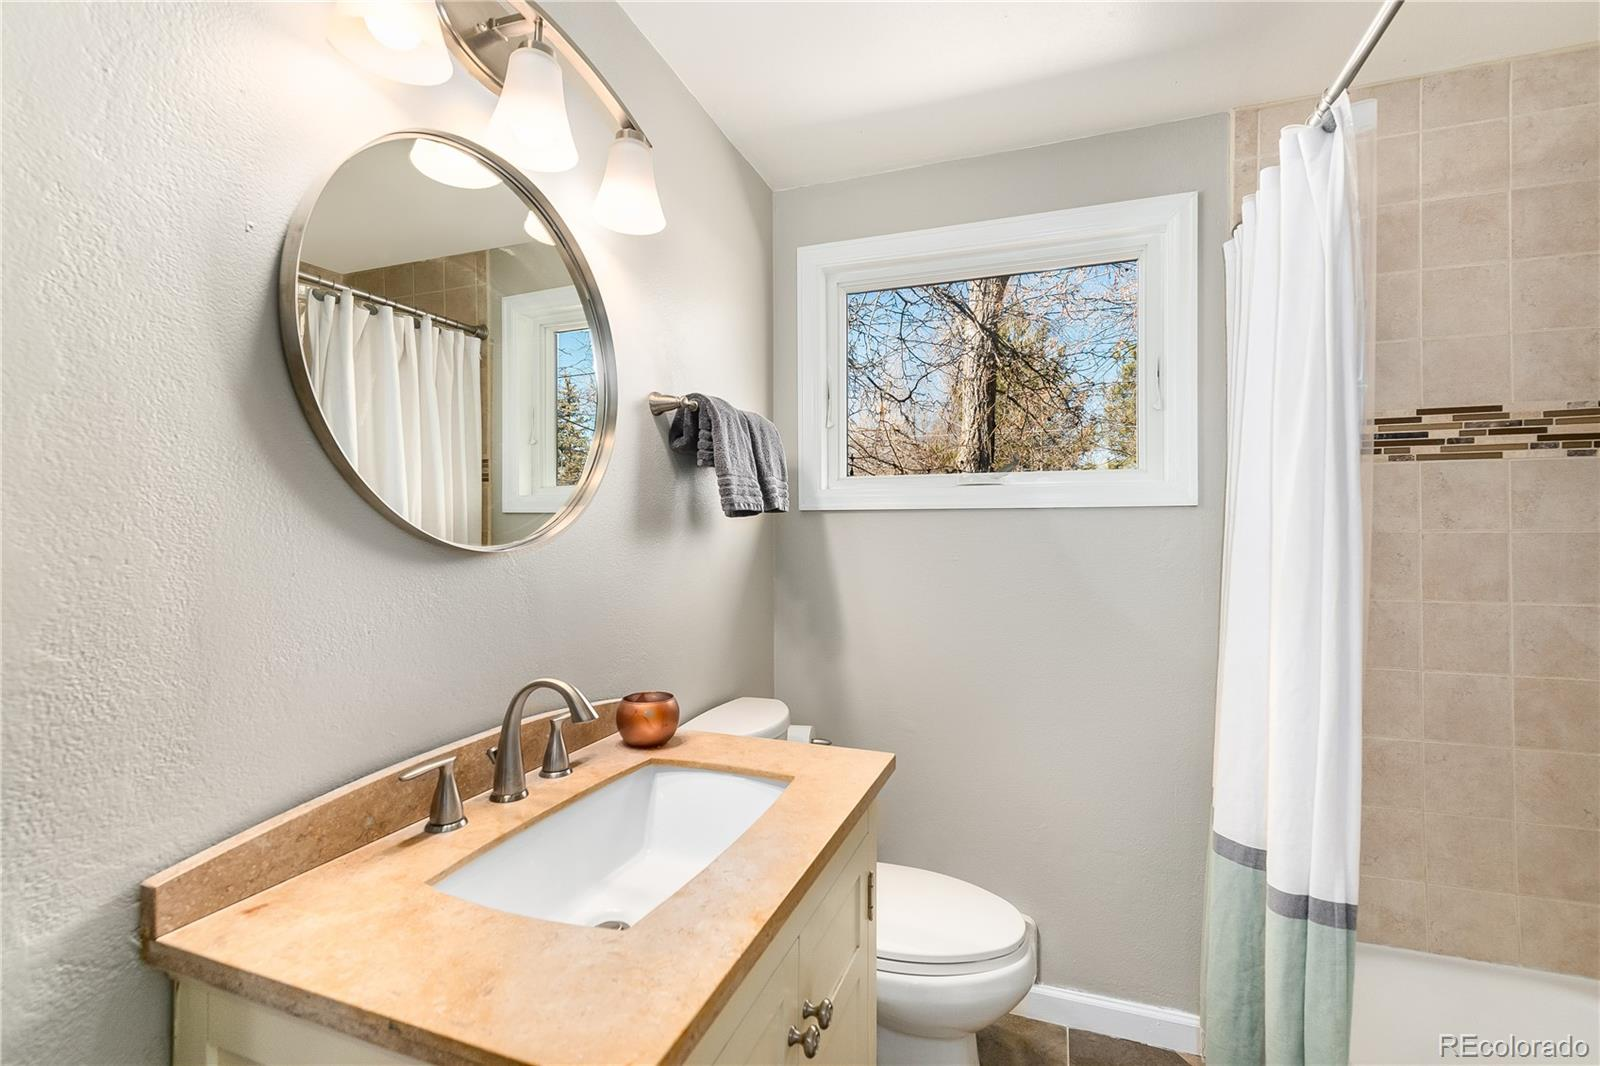 MLS# 2050120 - 14 - 7195 W 24th Place, Lakewood, CO 80214